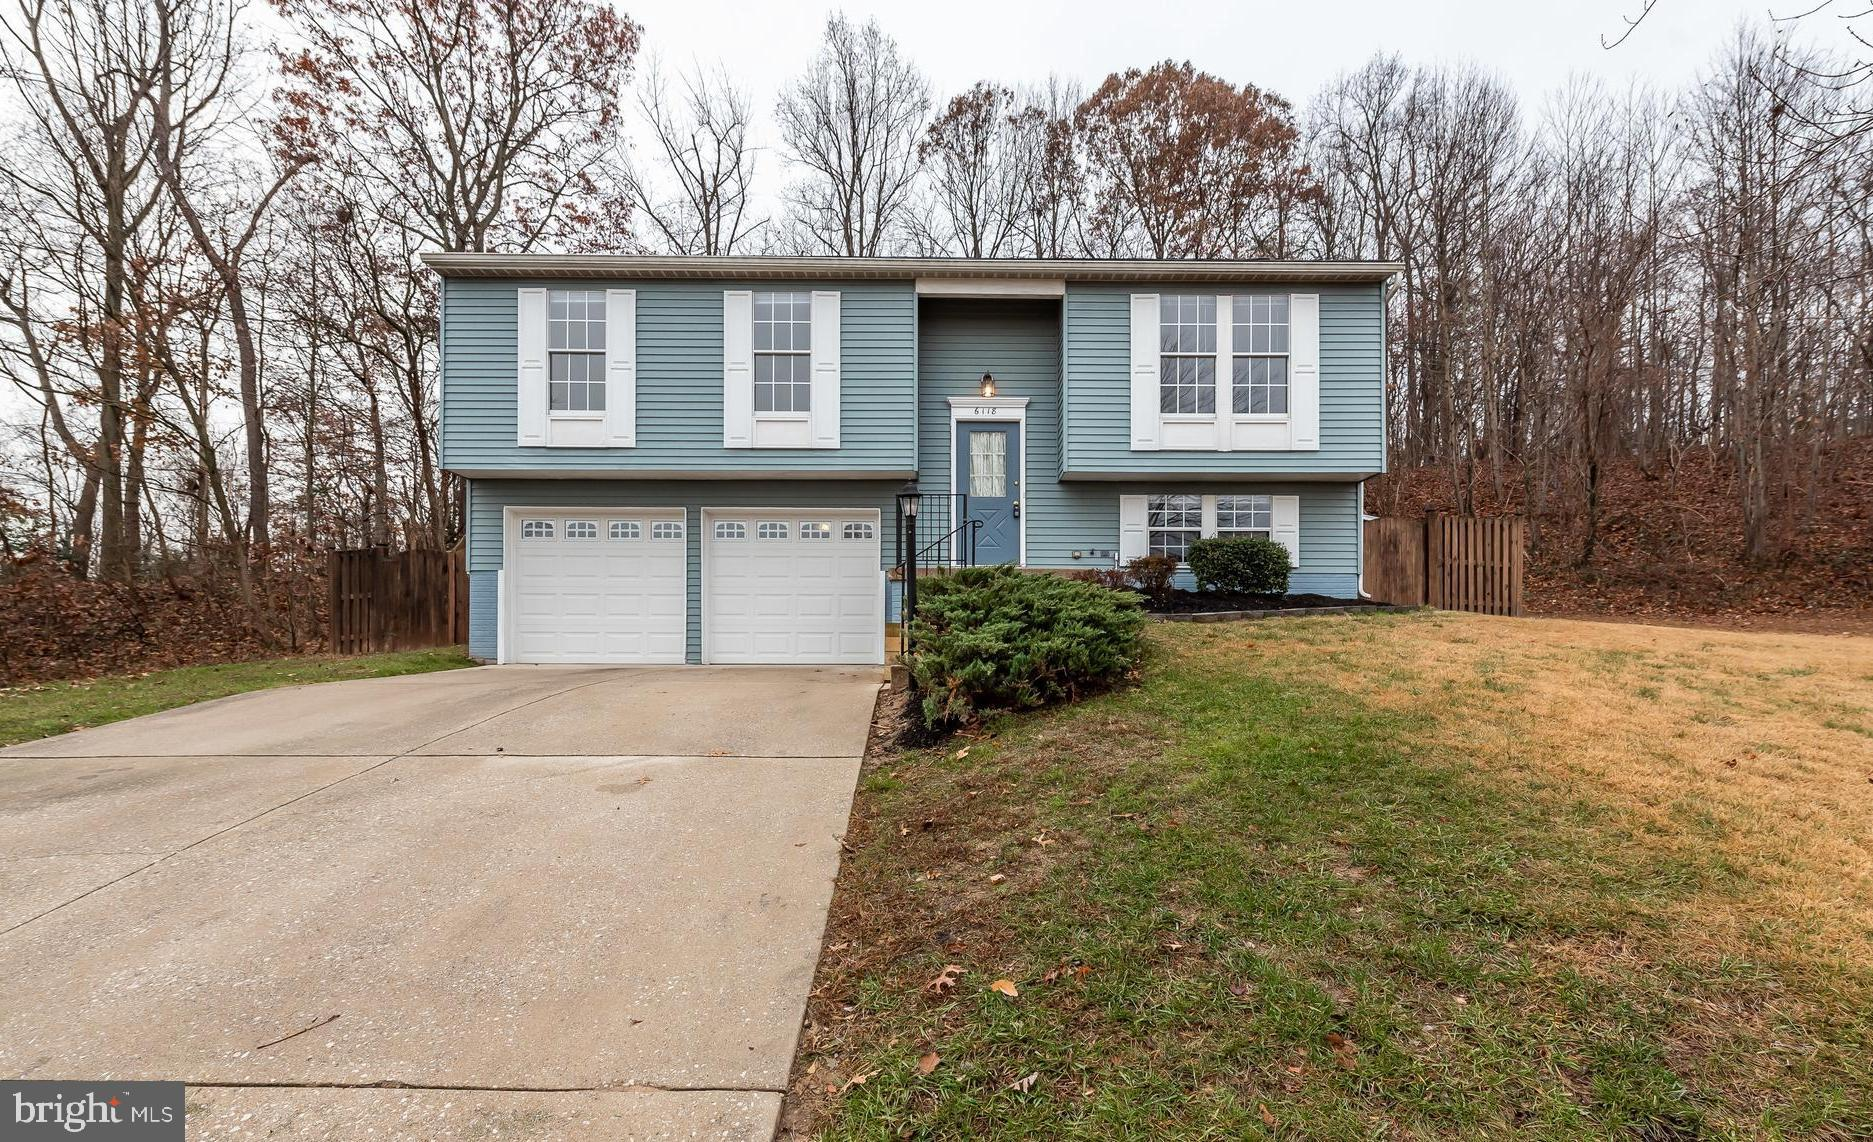 Move-in ready home is perfectly set on a private cul-de-sac! Fresh paint, new carpet, kitchen update